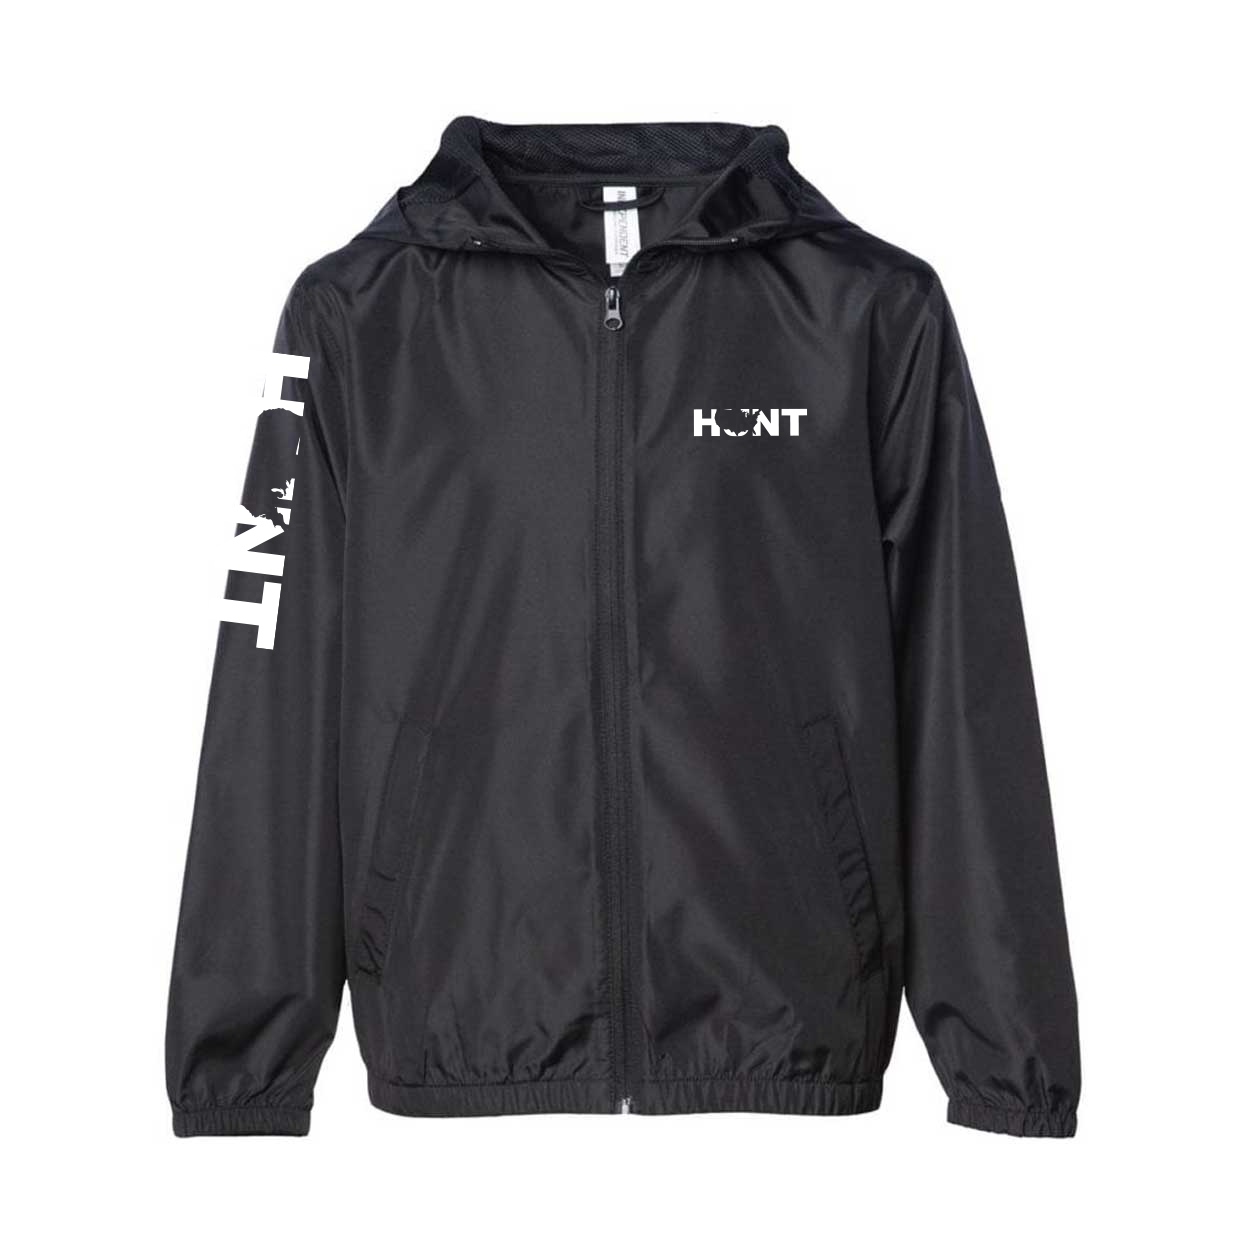 Hunt United States Classic Youth Lightweight Windbreaker Black (White Logo)